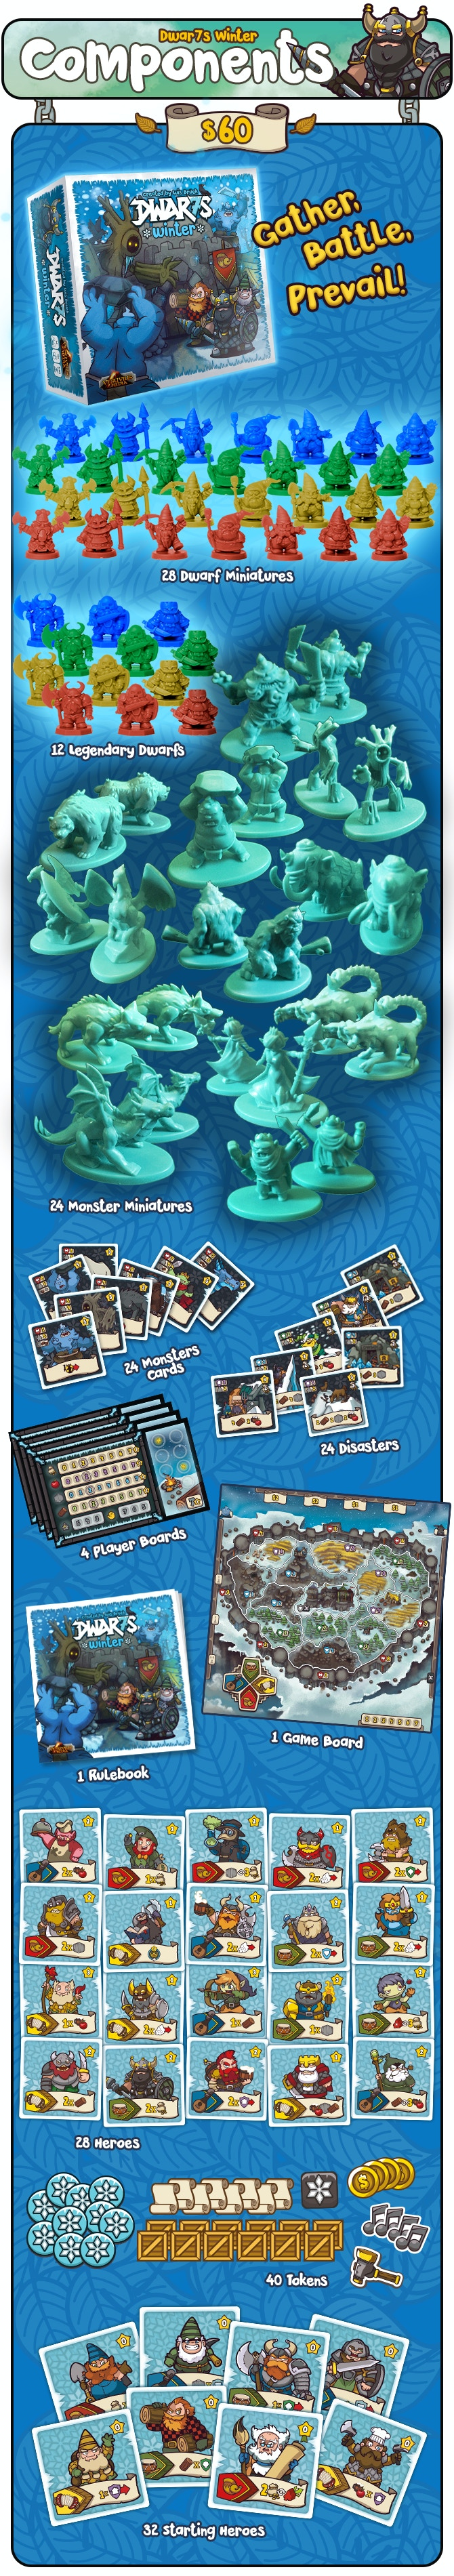 This is the FULL Kickstarter Edition of the game as seen in the Dwar7s Winter Kickstarter Campaign.